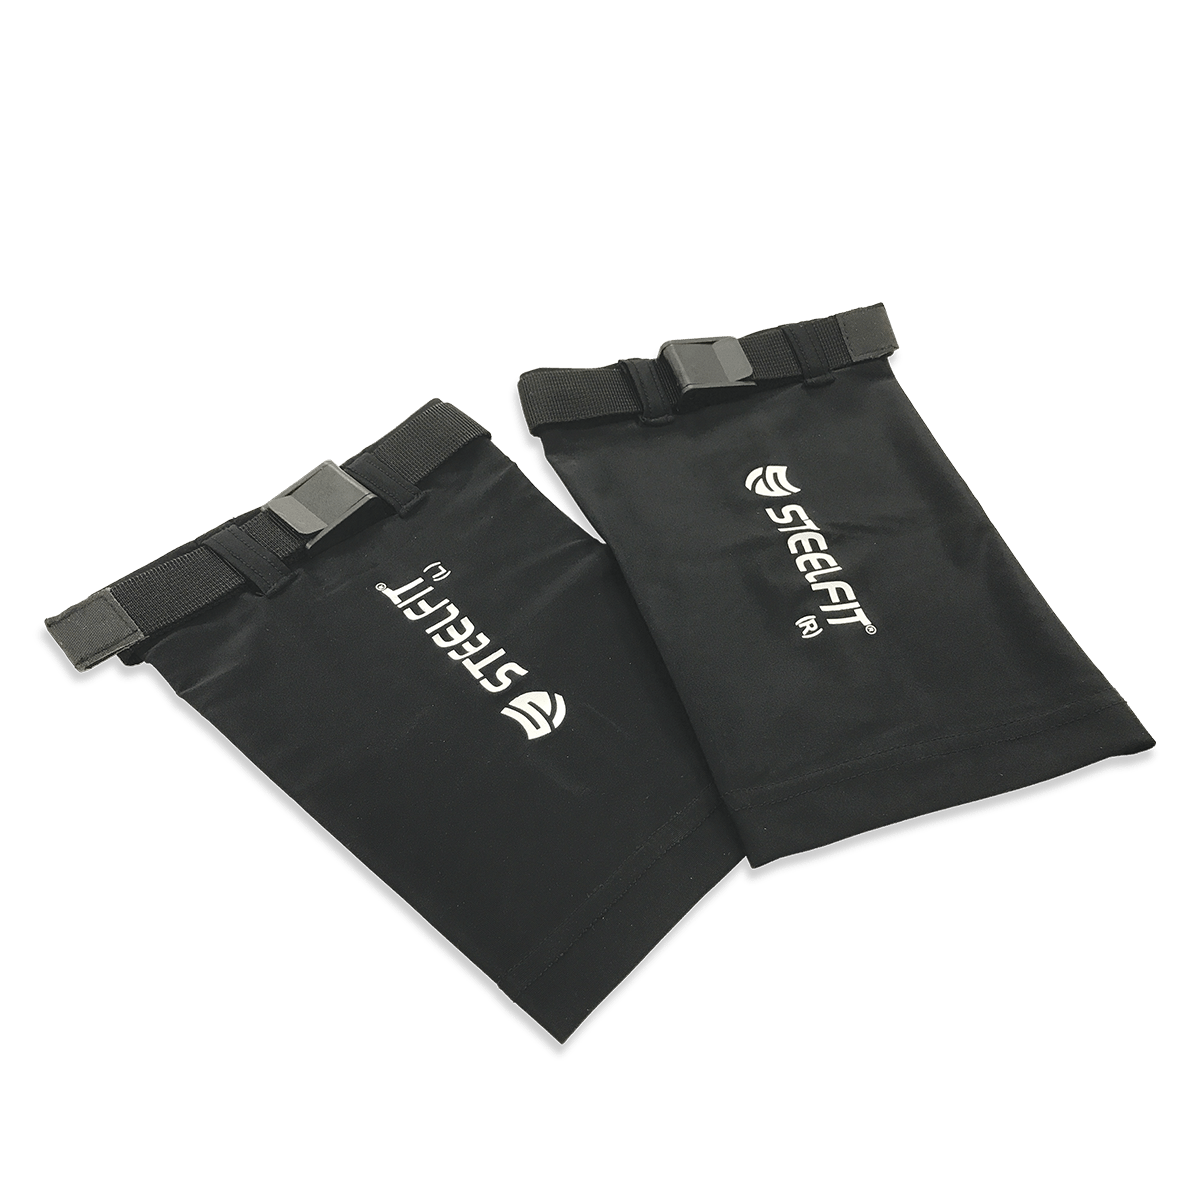 STEELFIT BLOOD FLOW RESTRICTION TRAINING SLEEVES